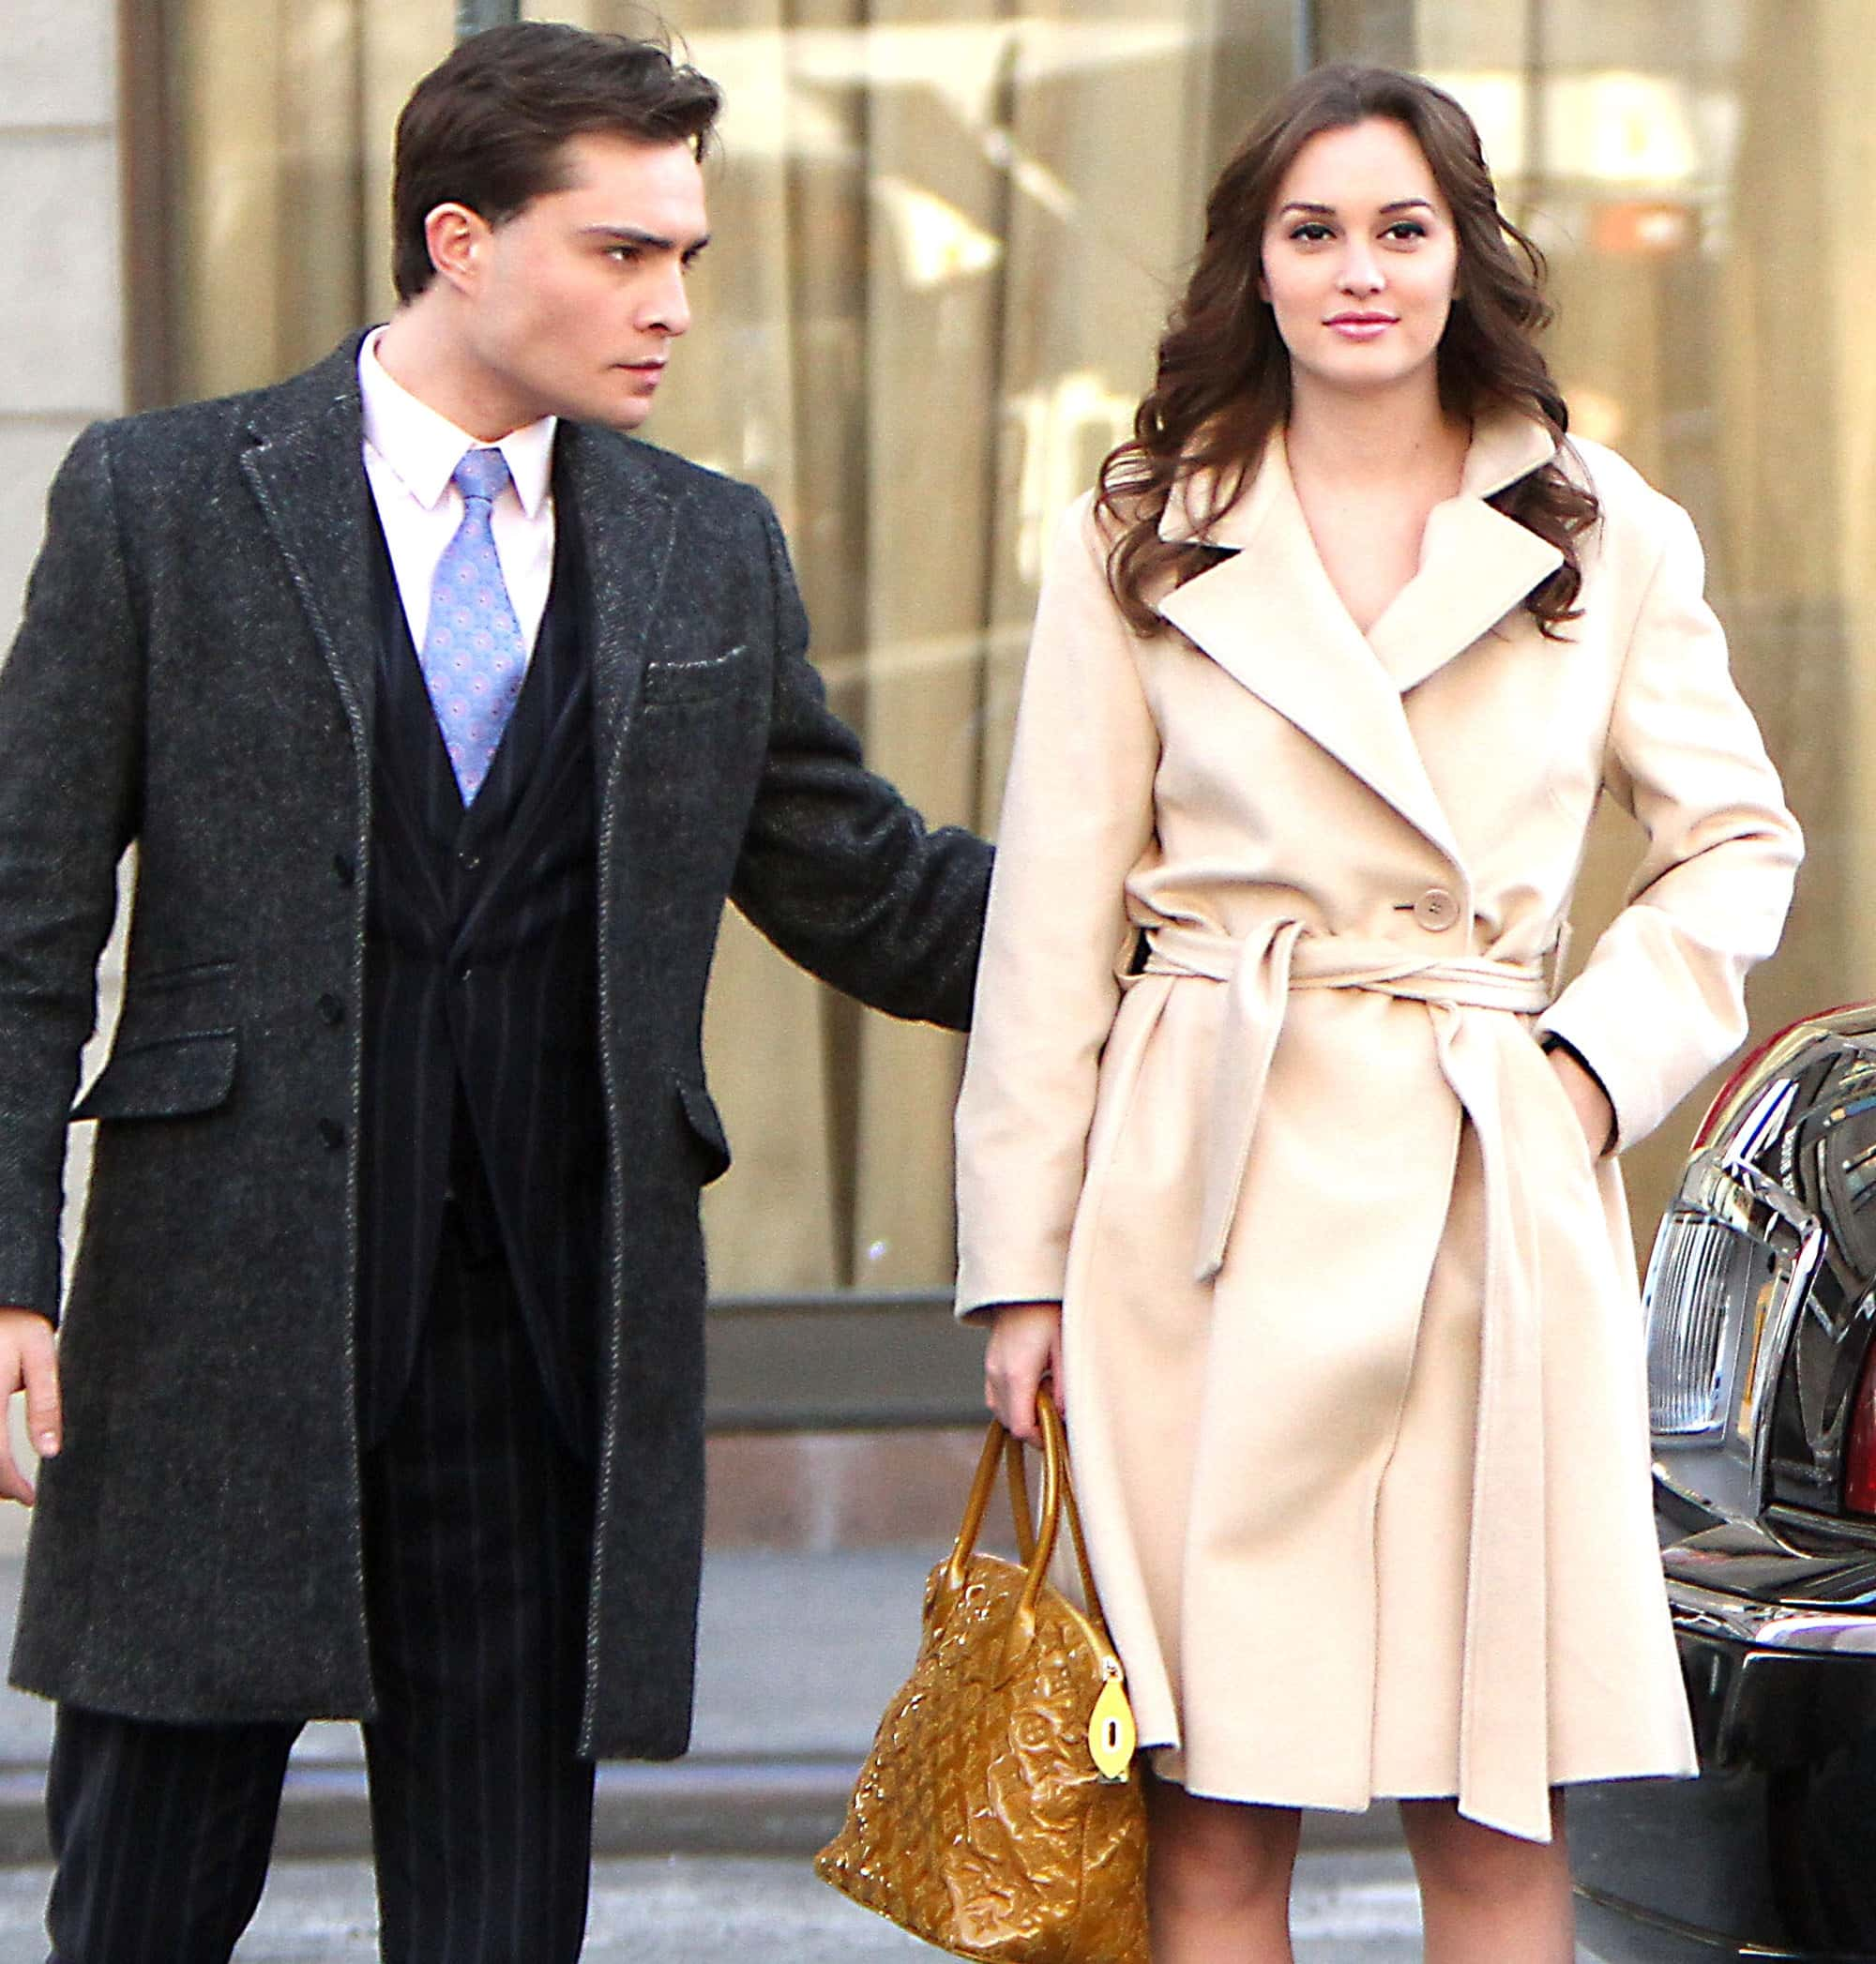 Ed Westwick says he fell in love with Leighton Meester